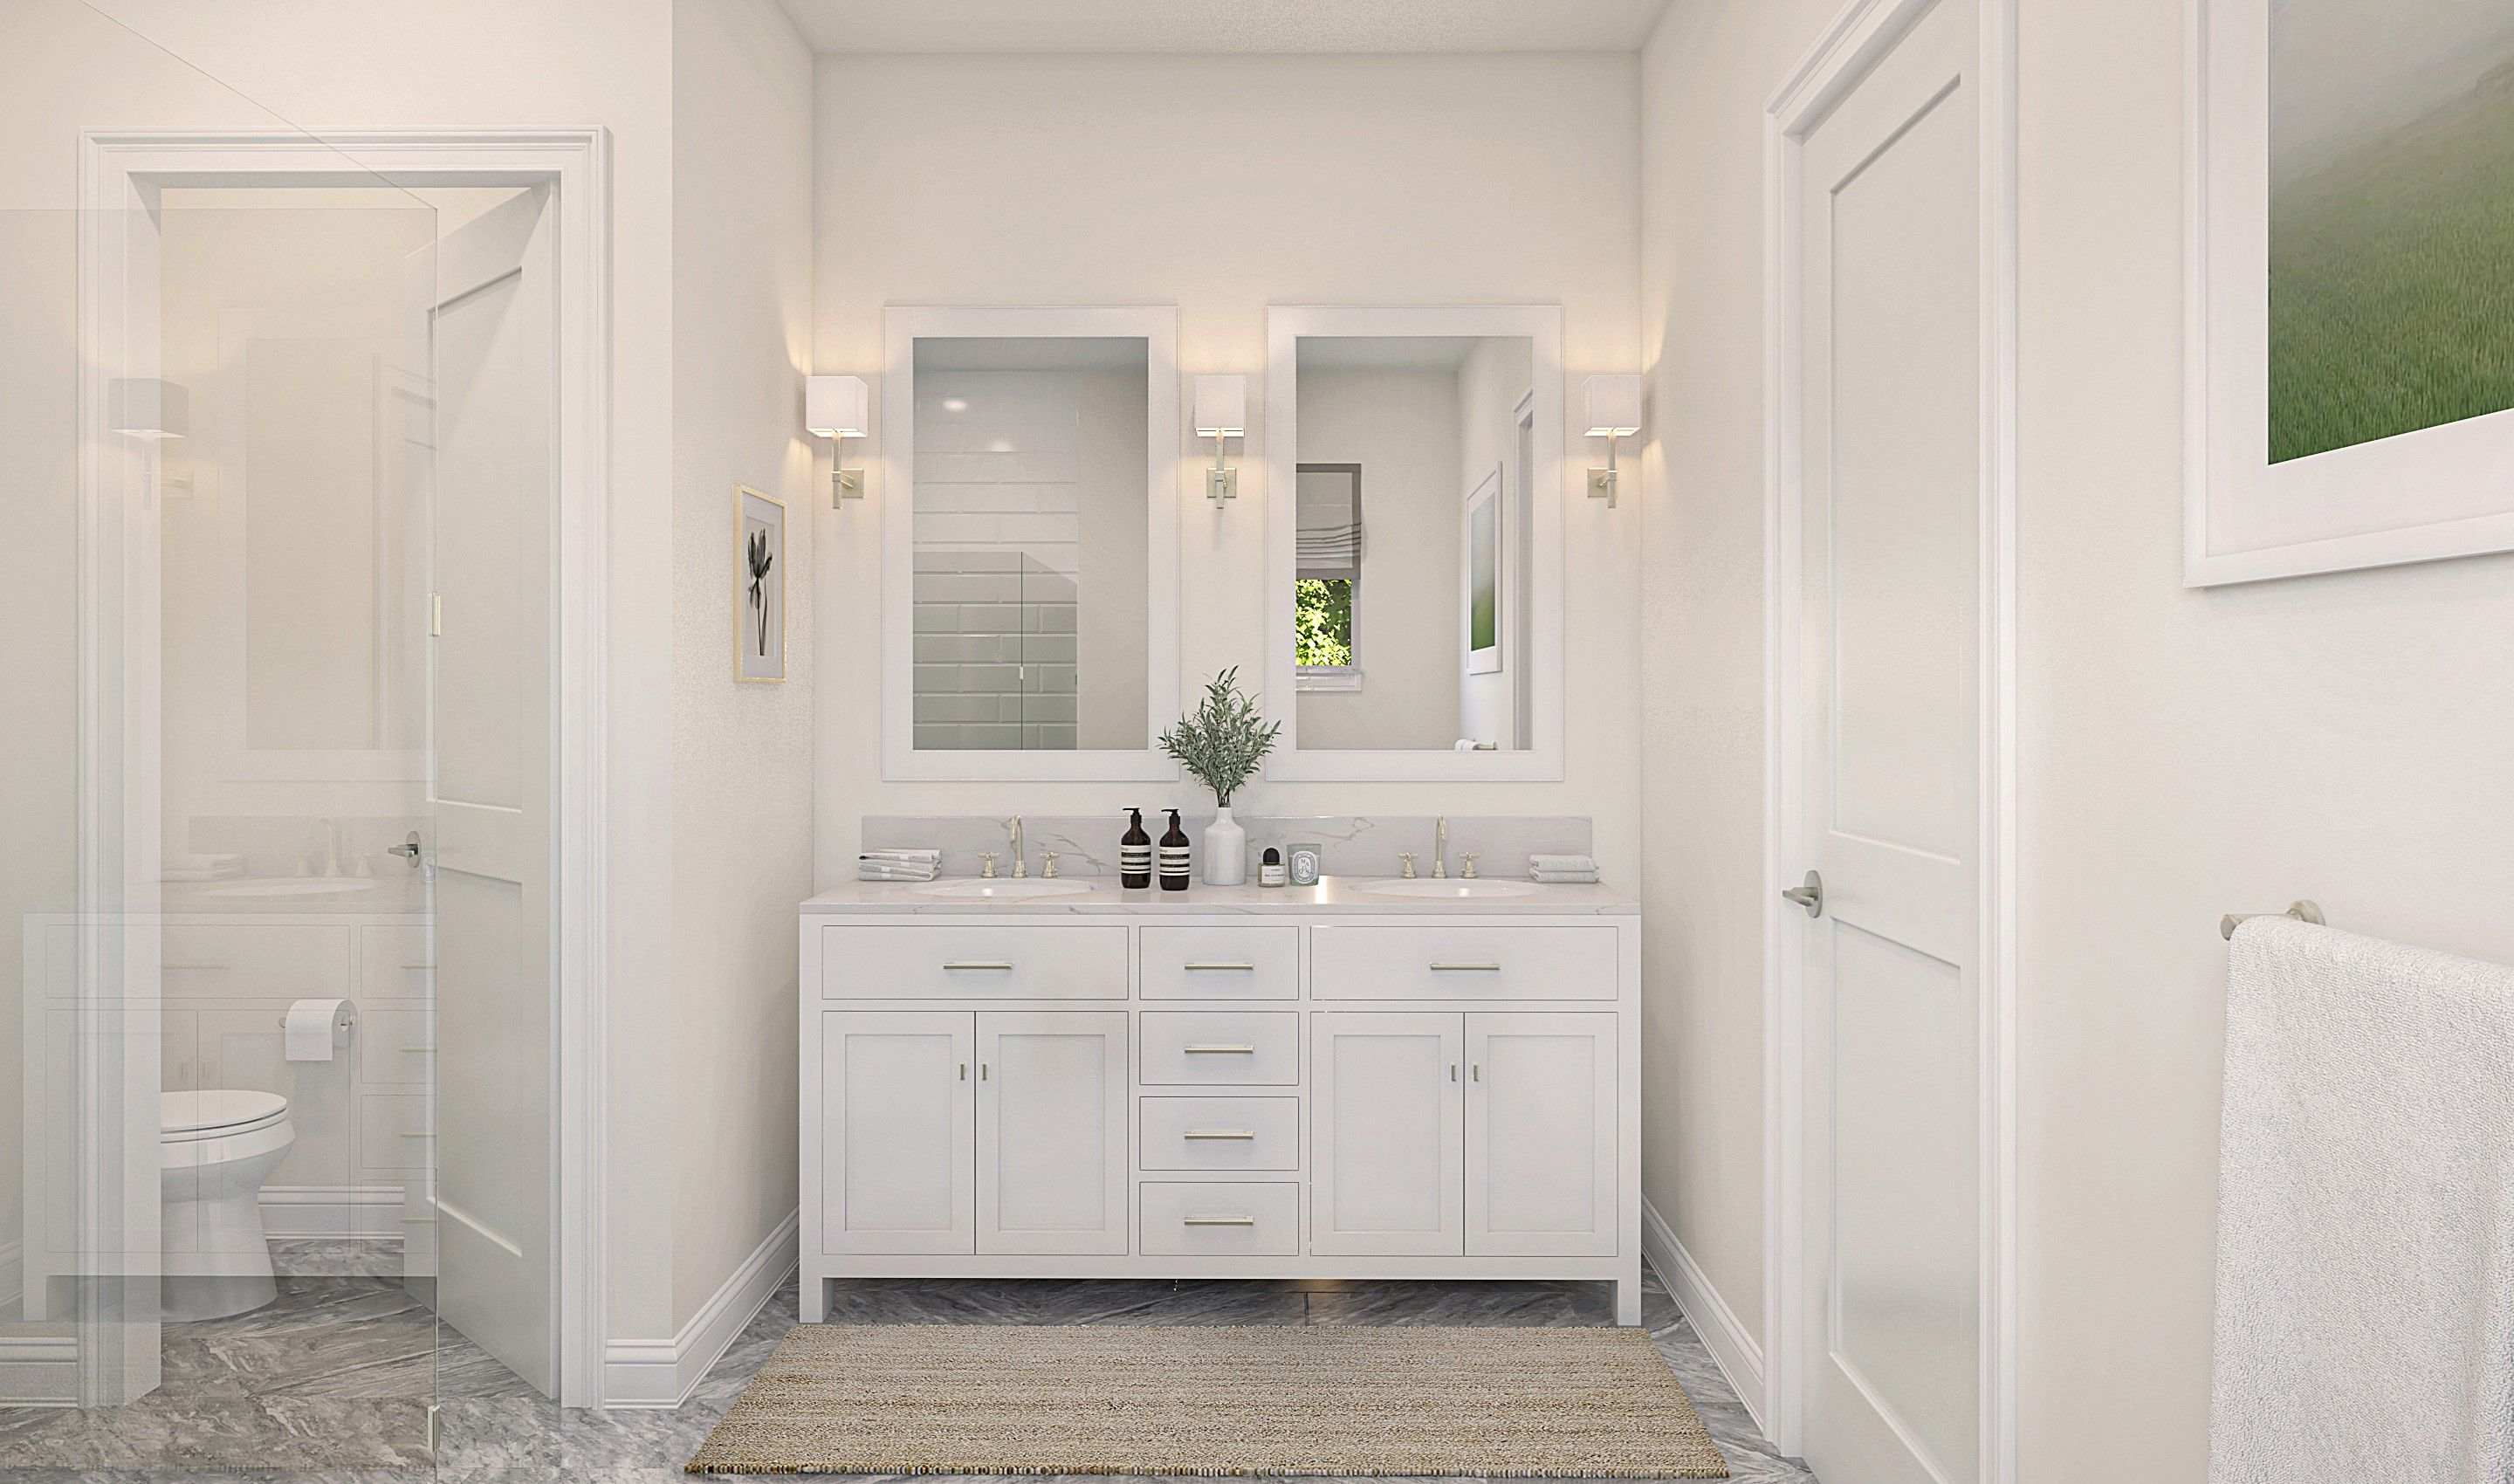 Bathroom featured in the Albert By K. Hovnanian® Homes in Palm Beach County, FL